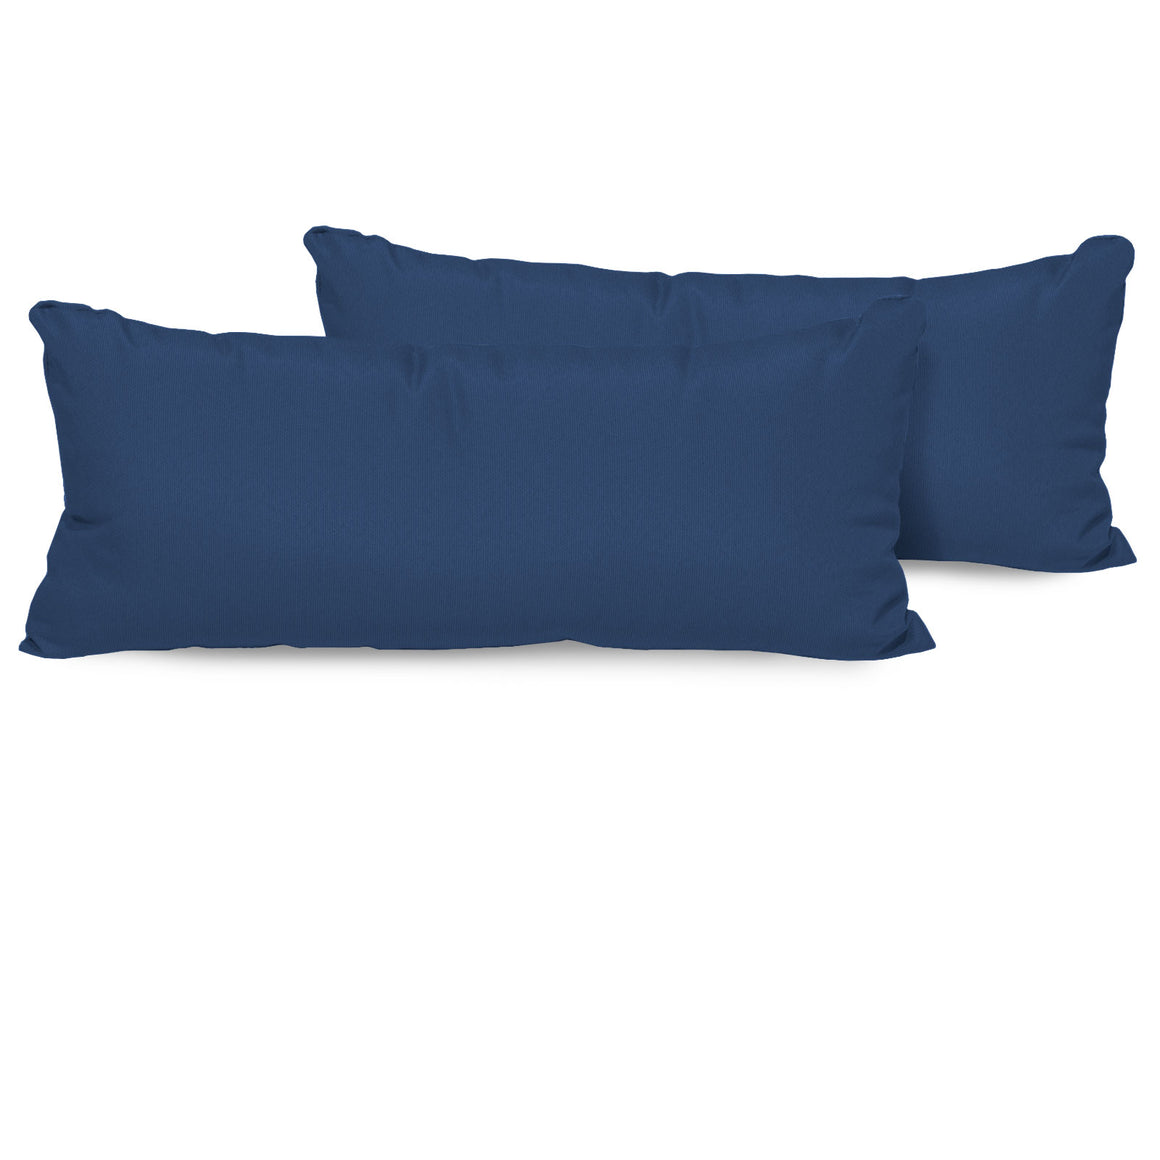 Navy Outdoor Throw Pillows Rectangle Set of 2 , TK Classics- grayburd